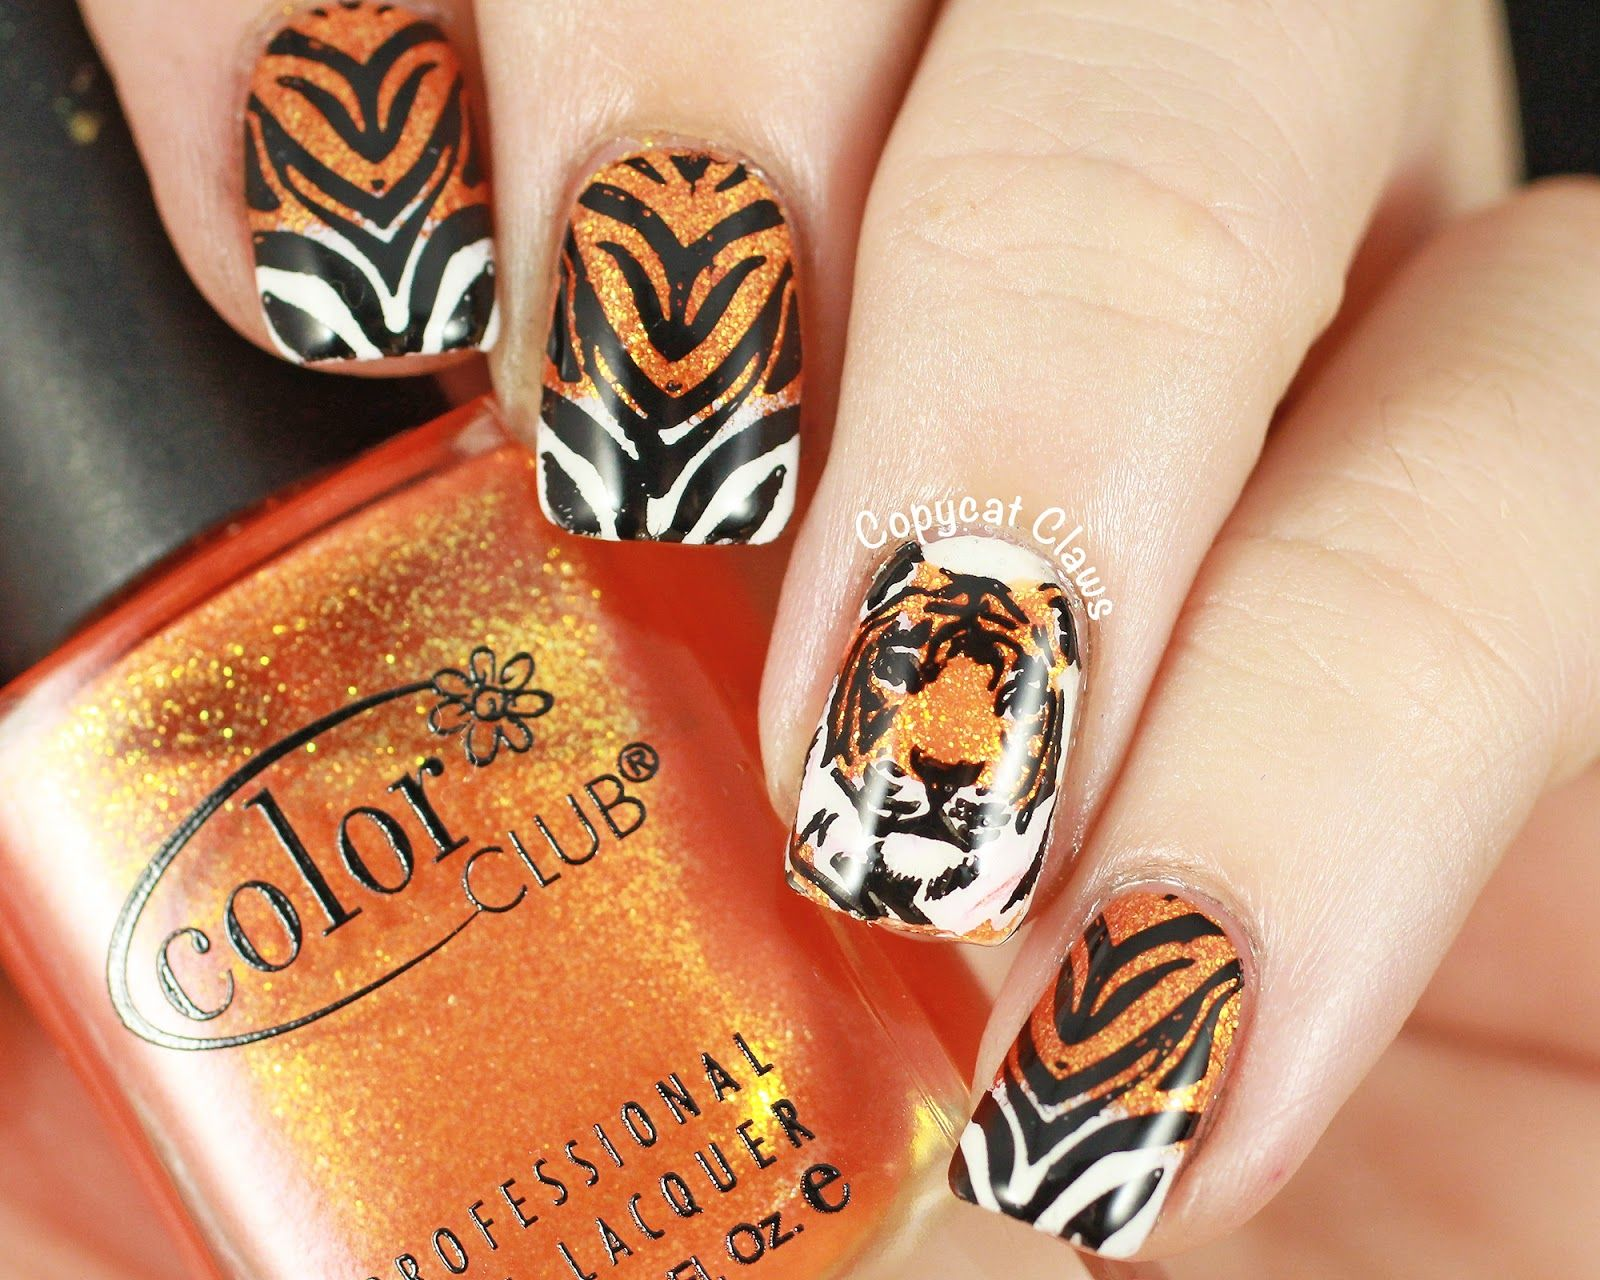 Copycat claws sunday stamping tiger nails nails pinterest copycat claws sunday stamping tiger nails prinsesfo Images